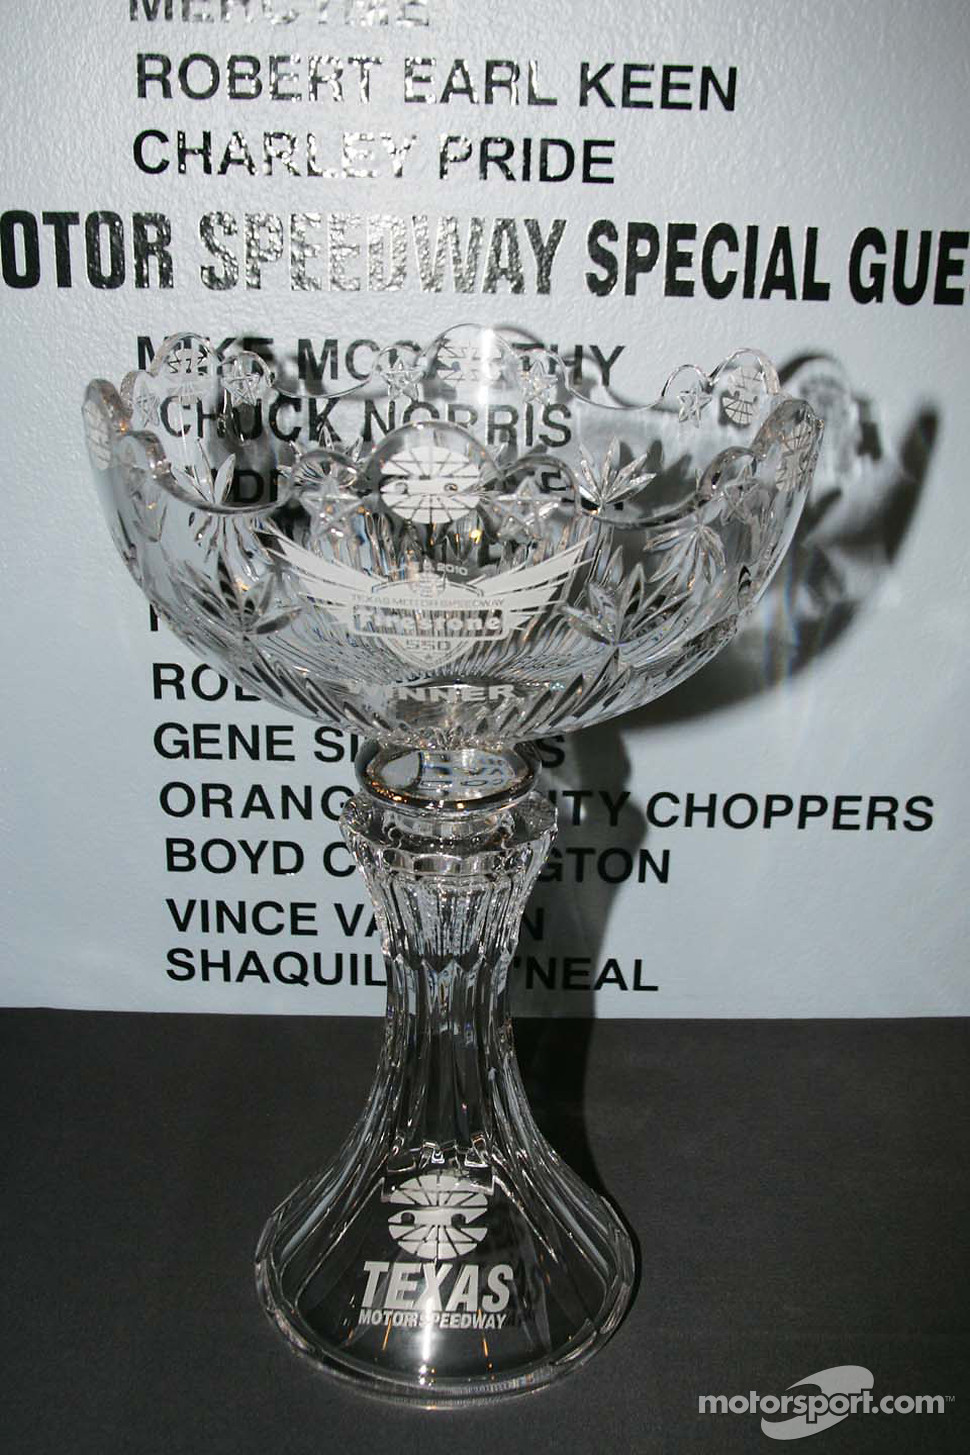 The Foyt-Rutherford Trophy given to the winner of the Firestone 550K at Texas Motor Speedway